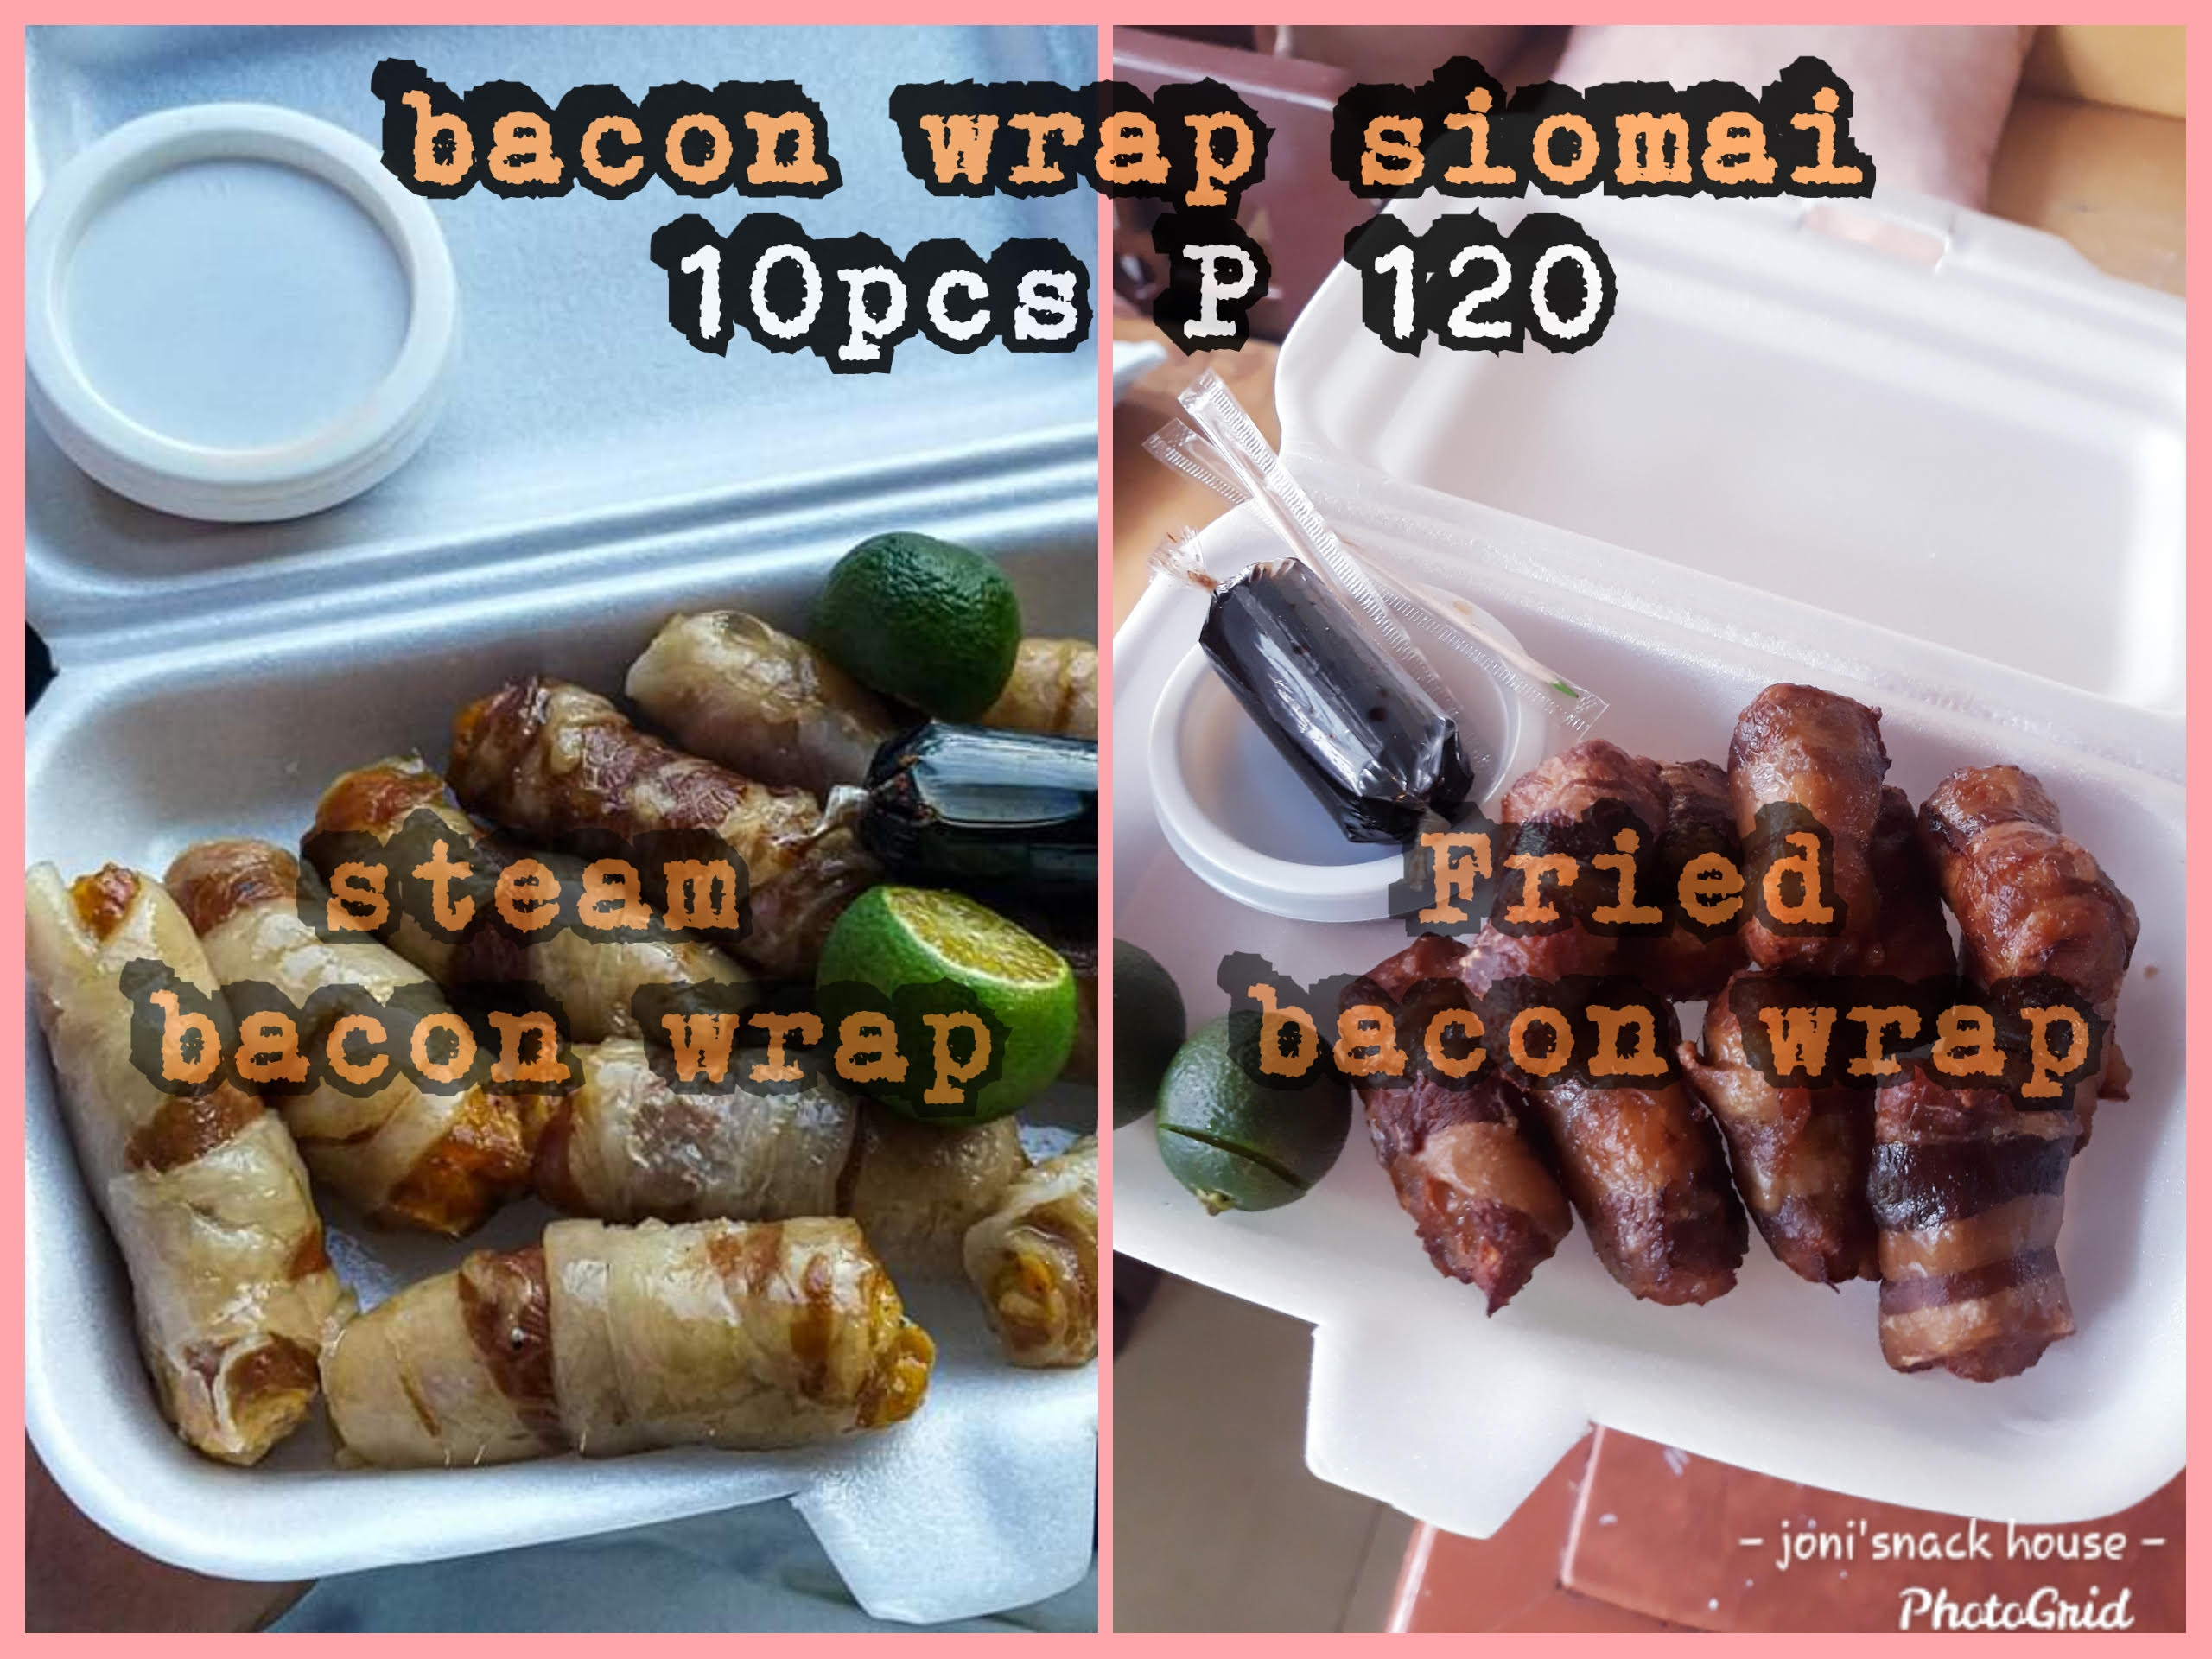 Joni's Bacon Wrap Siomai